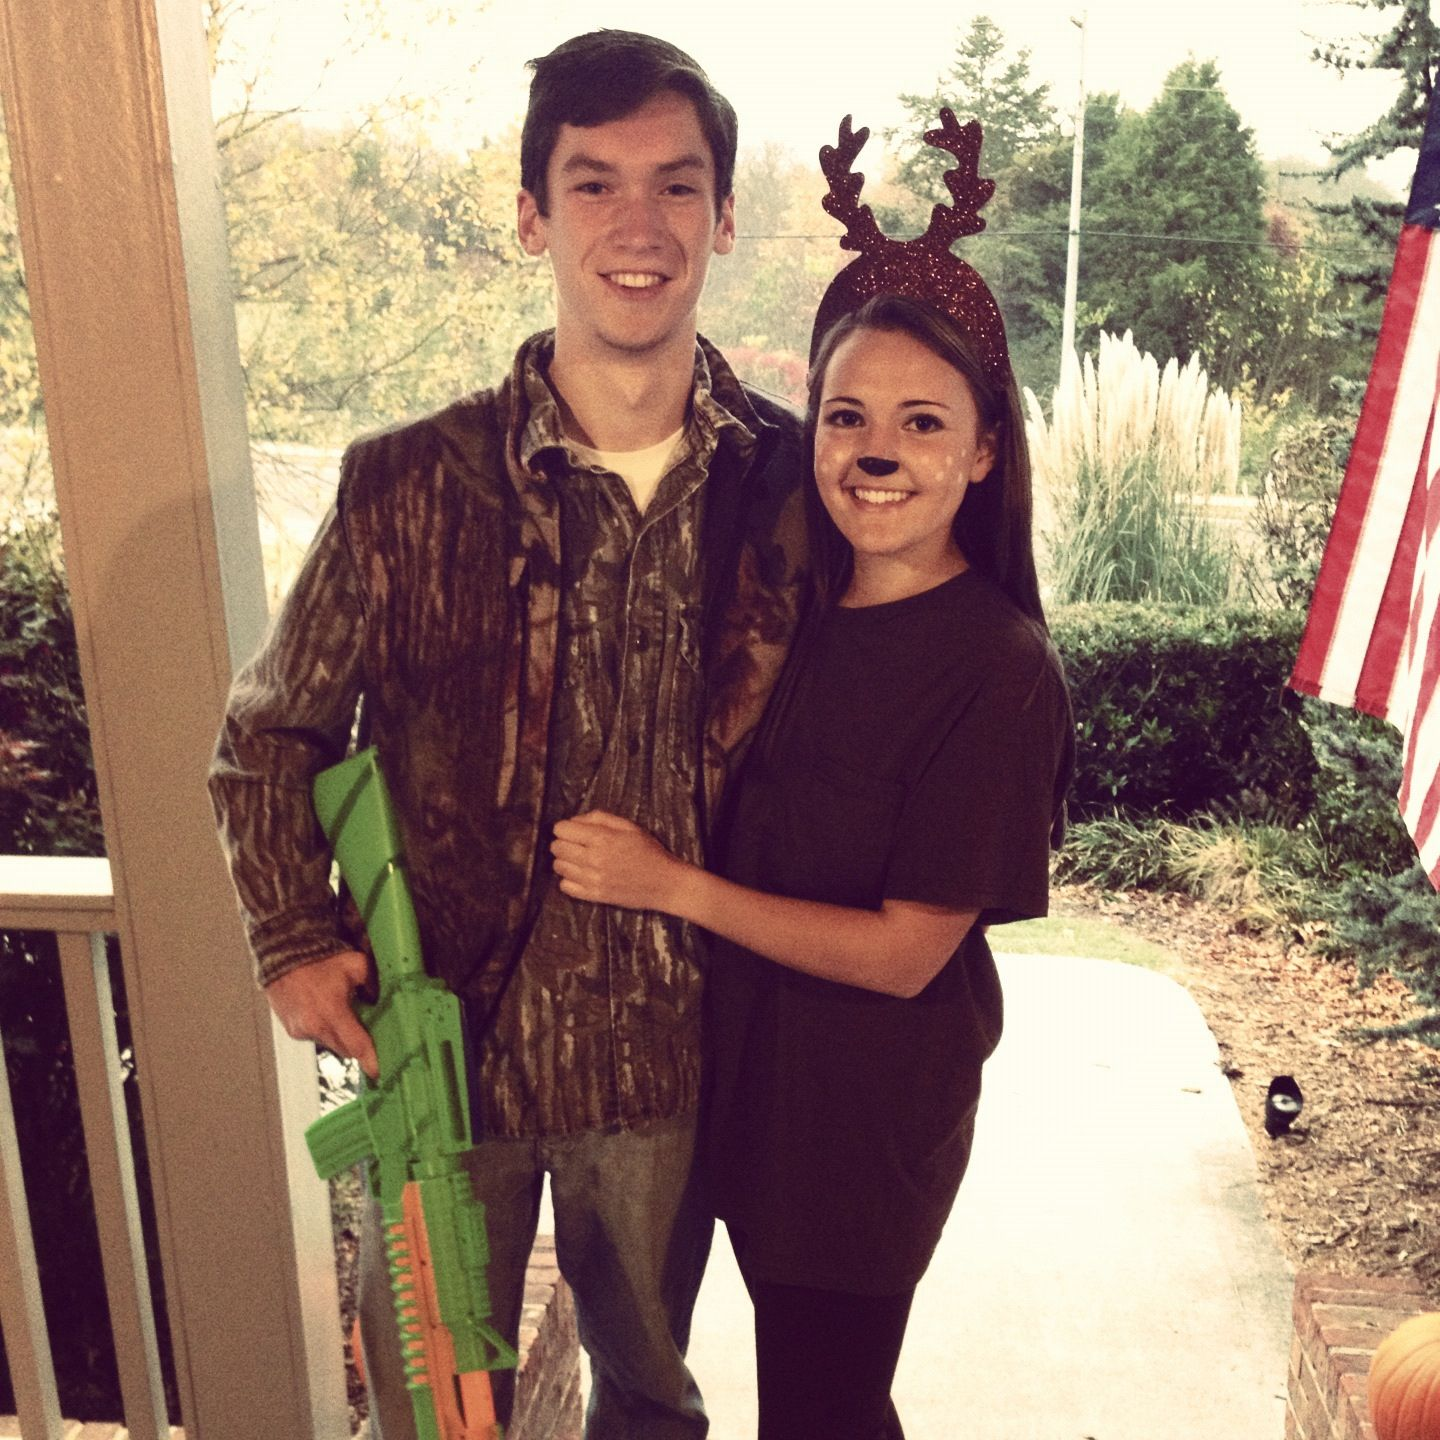 hunter and deer couple halloween costume..finally a couple costume i